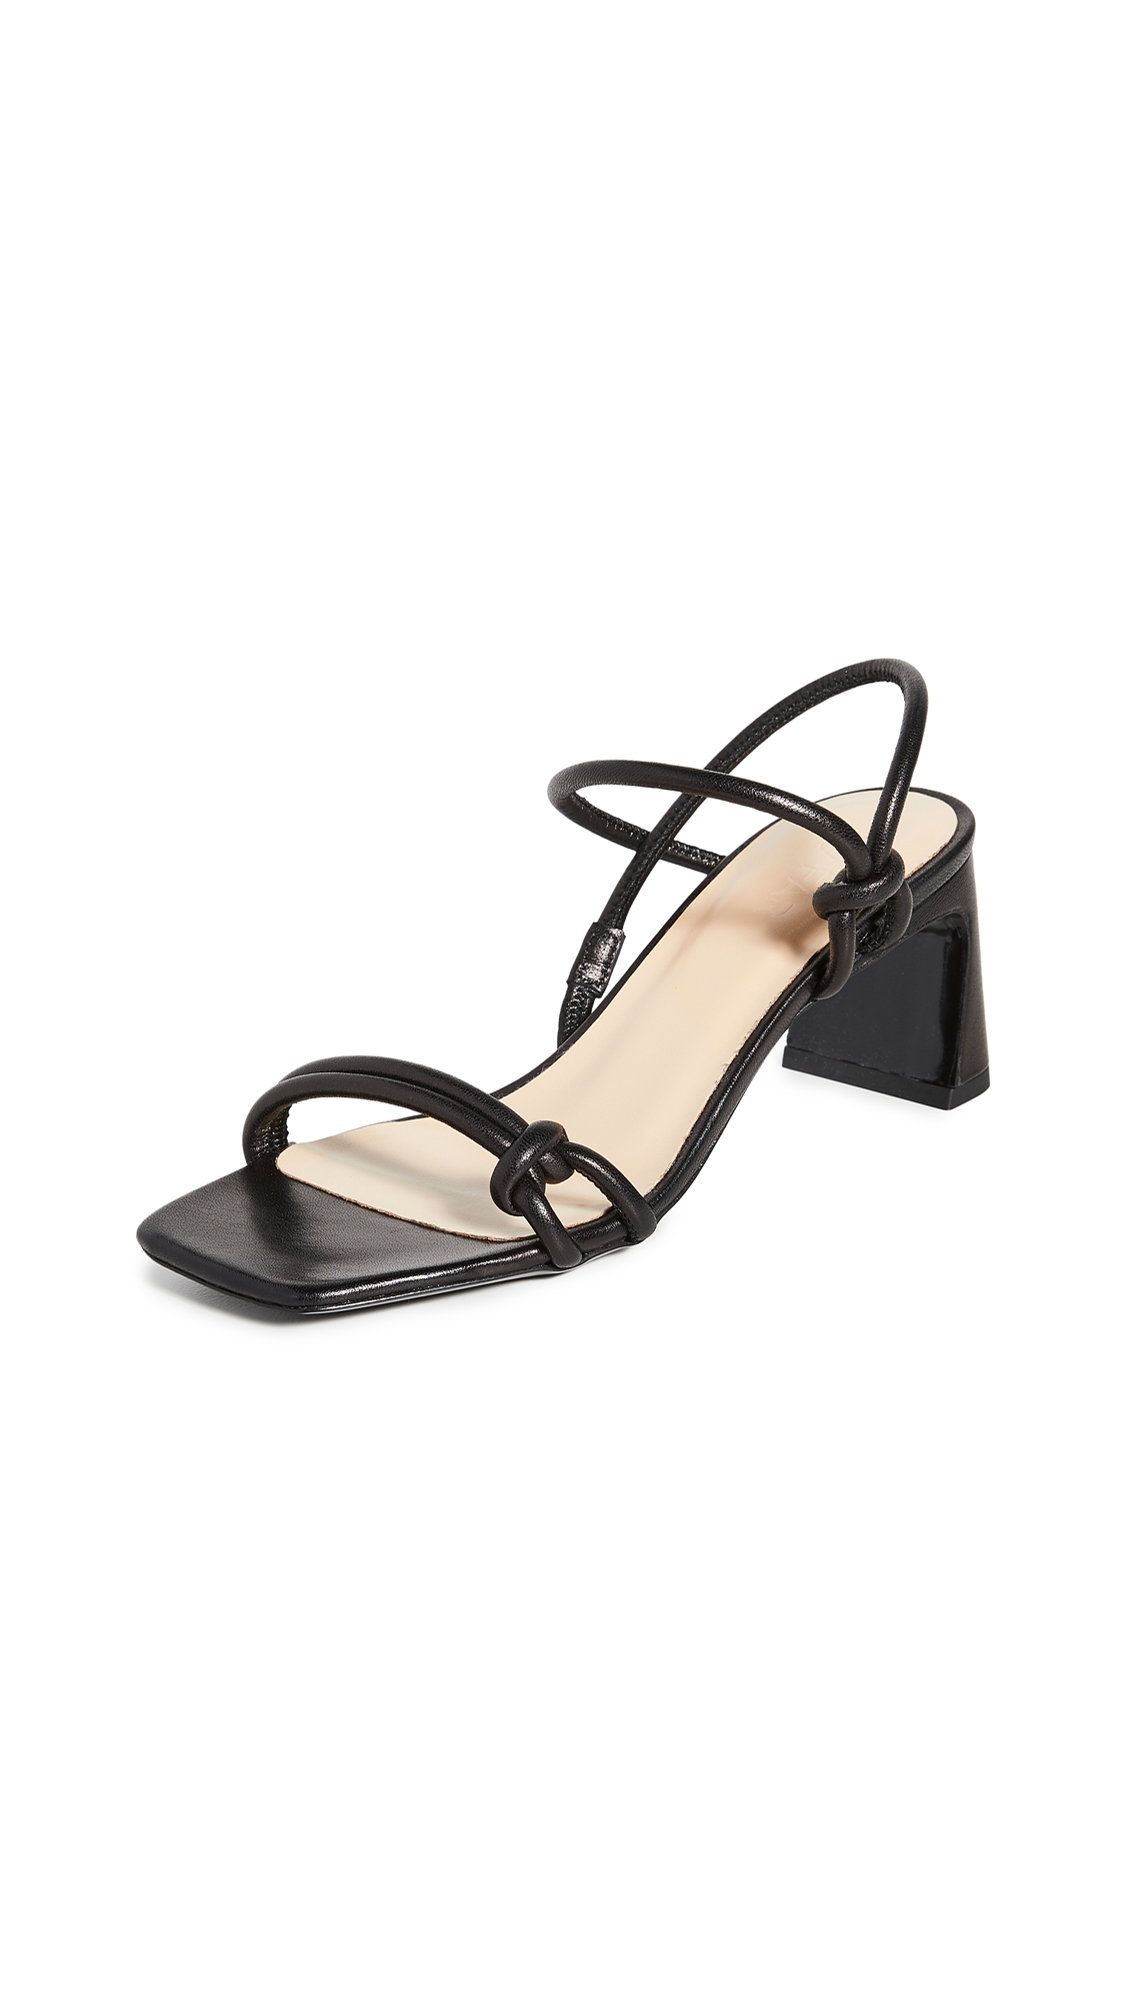 Buy BY FAR Charlie Sandals online, shop BY FAR